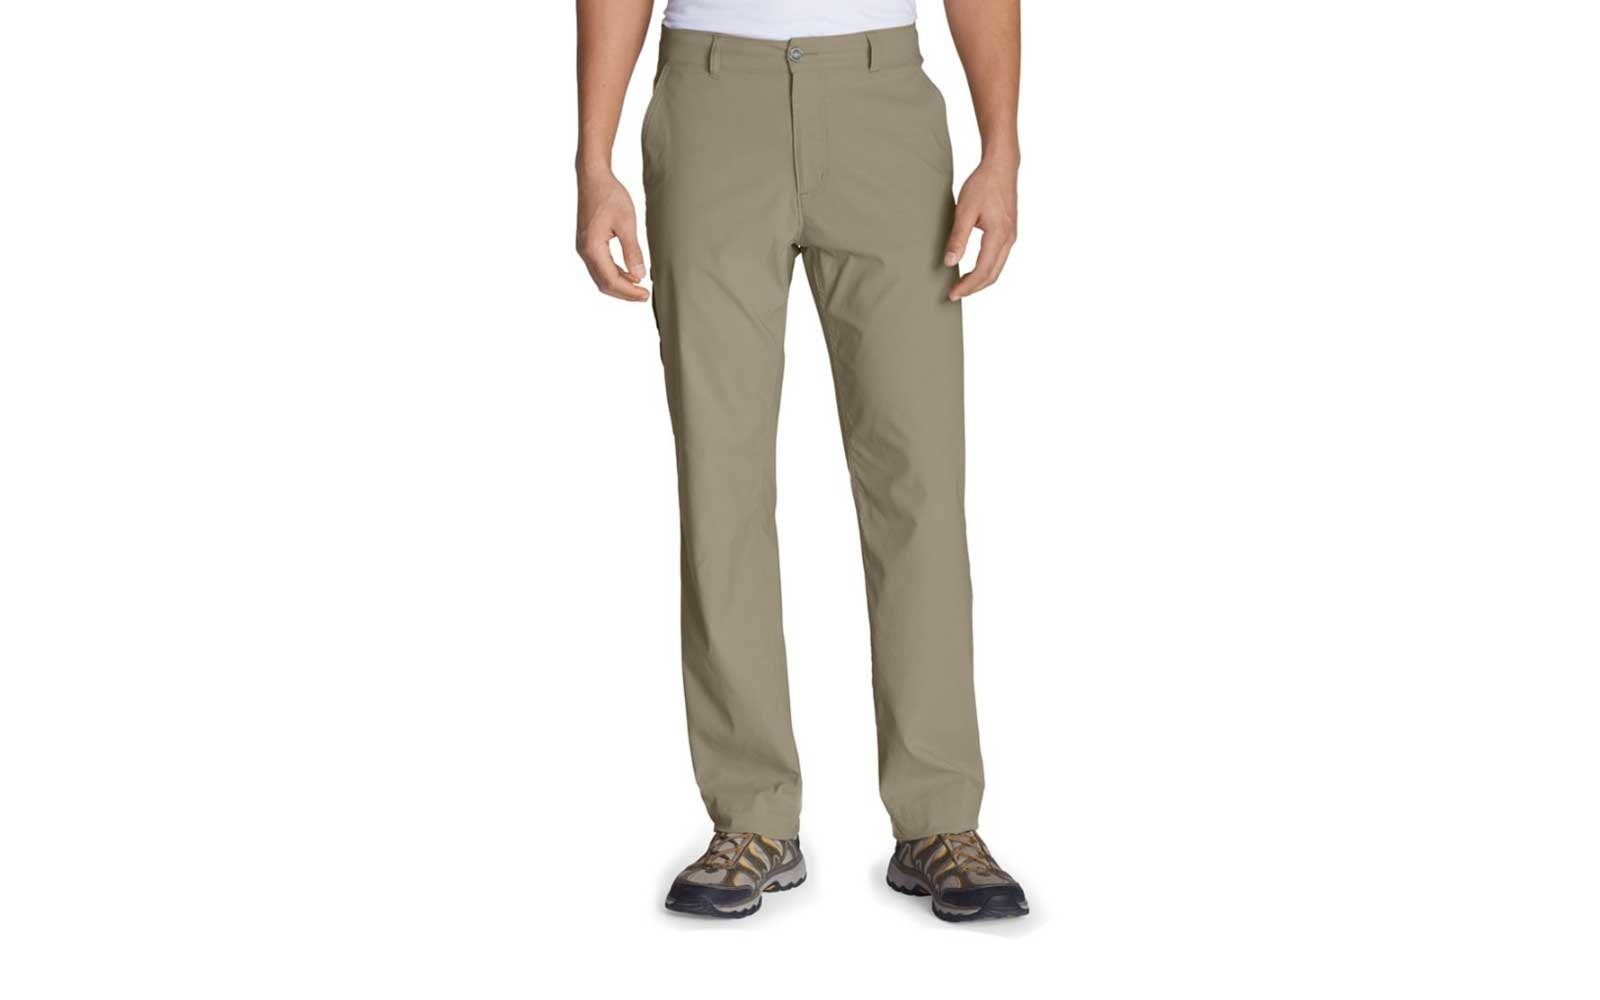 585c0ba0ba The Best Men's Travel Pants for Every Type of Trip | Travel + Leisure